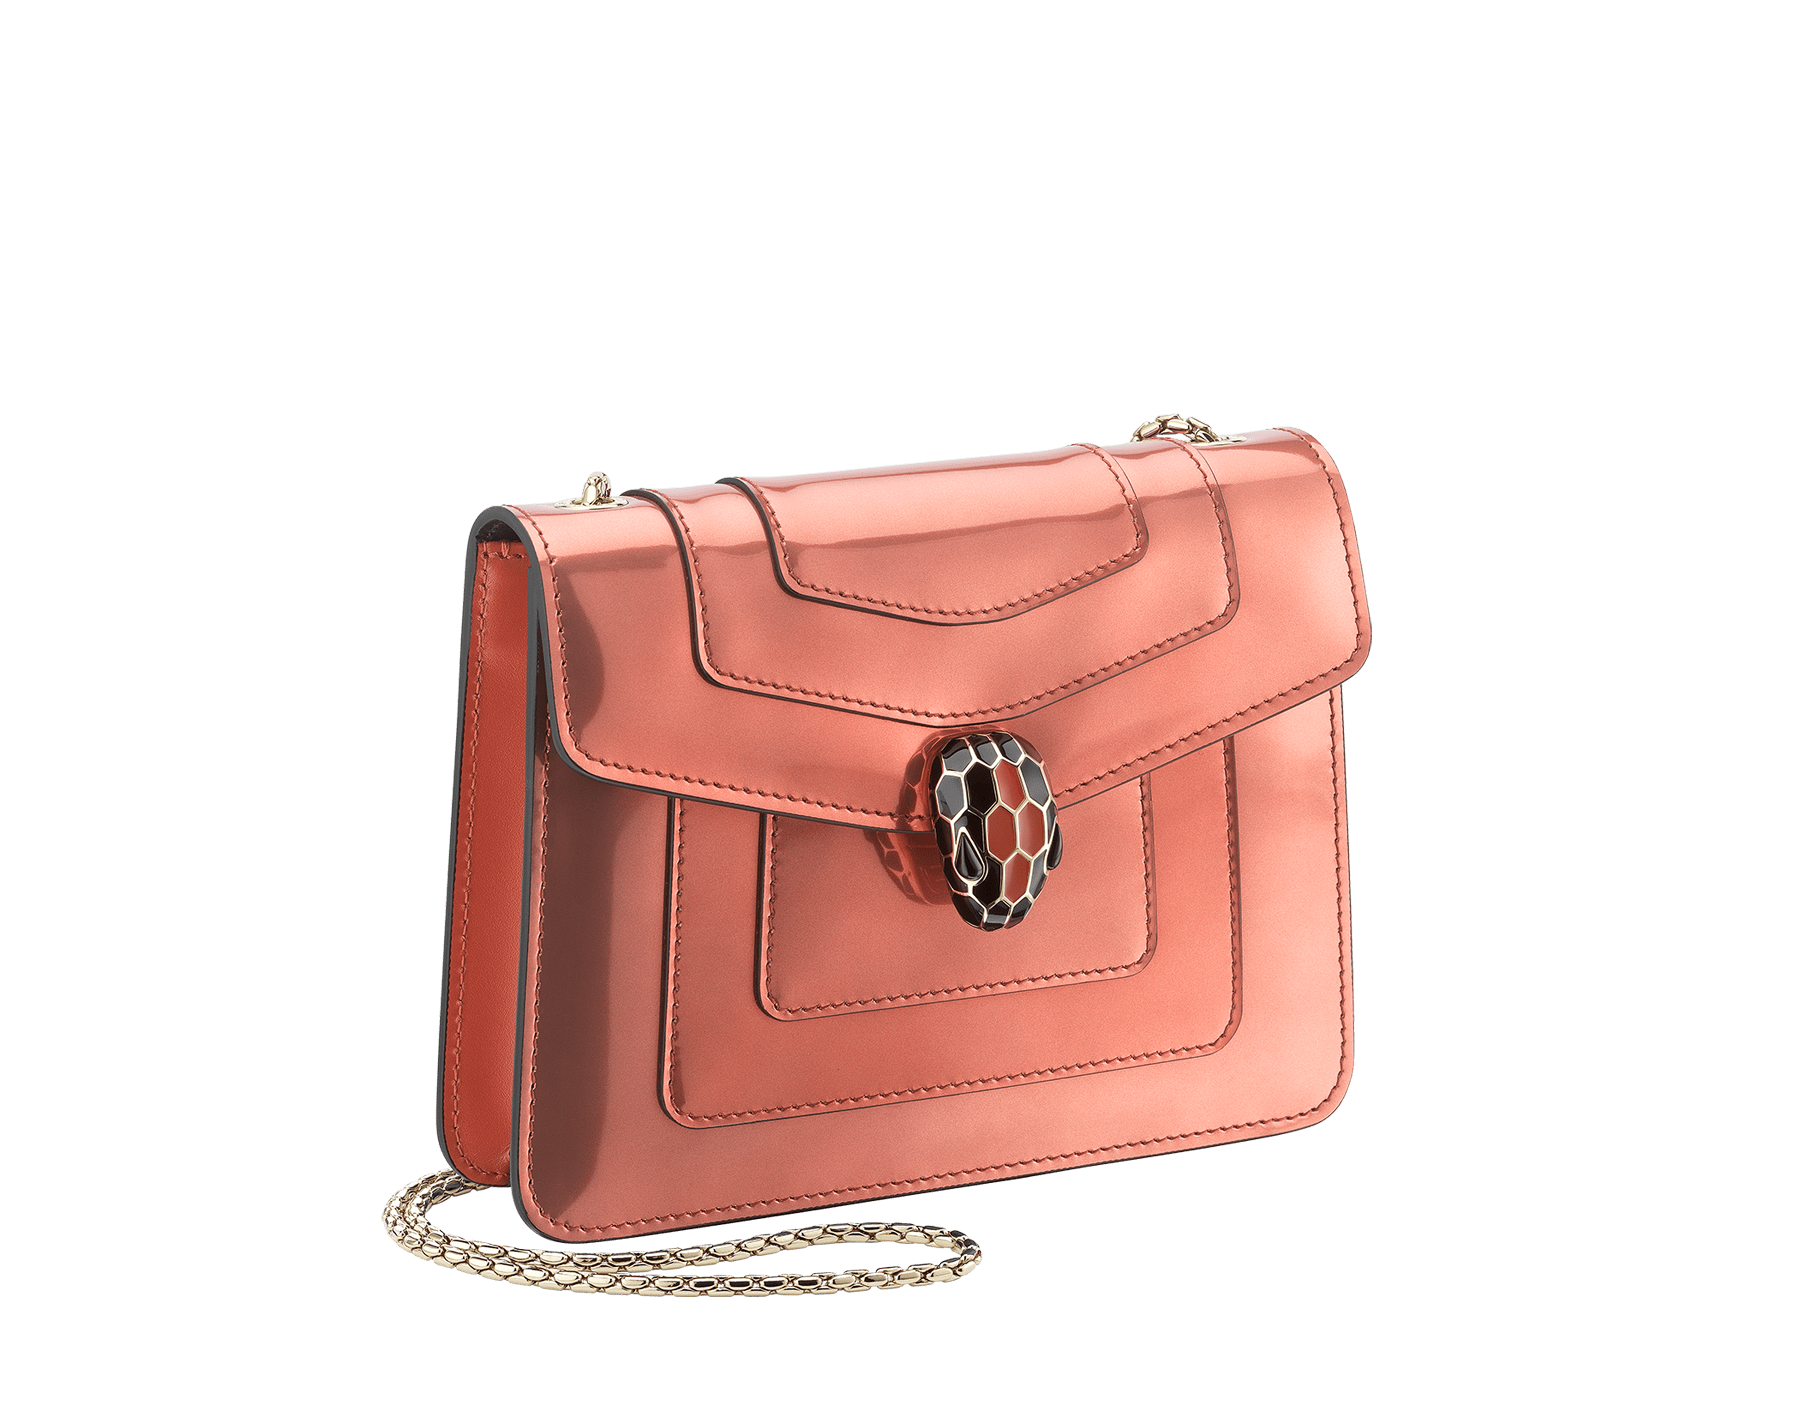 """Serpenti Forever"" crossbody bag in imperial topaz brushed metallic calf leather and tone-on-tone smooth calf leather. Iconic snakehead closure in light gold plated brass embellished with black and imperial topaz enamel and black onyx eyes. 288886 image 2"